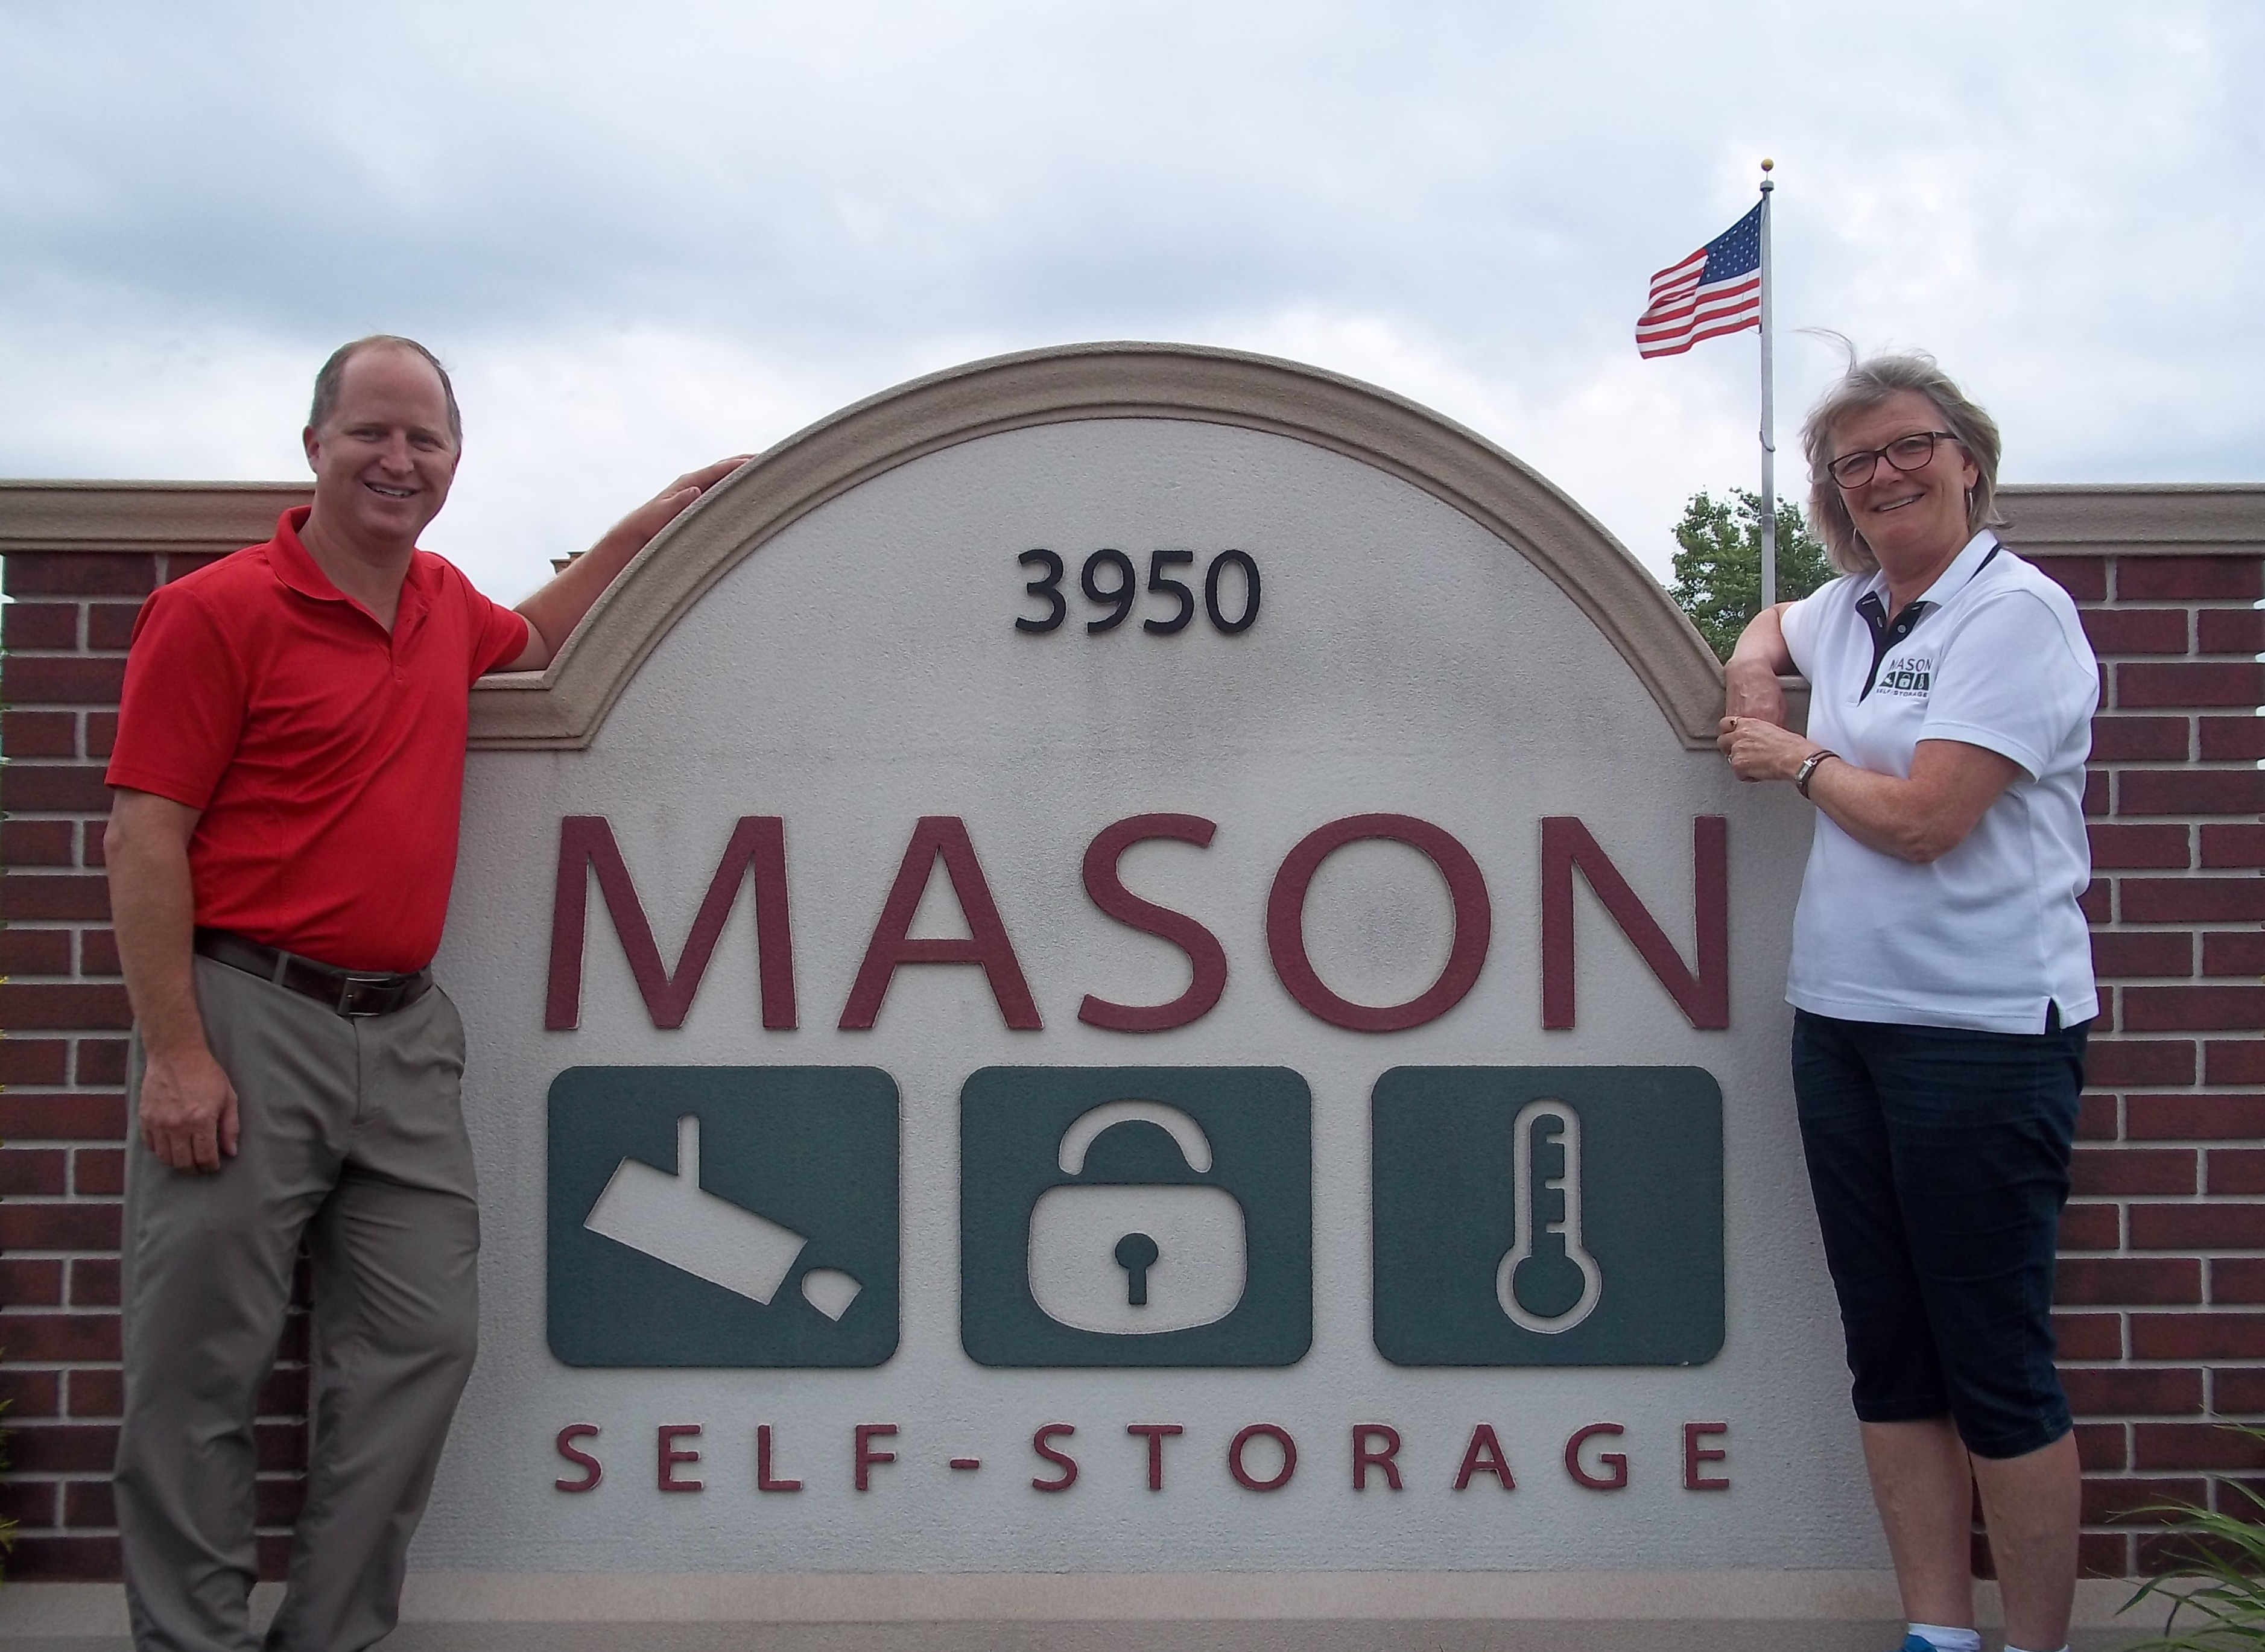 Wally Owner And Julie Manager Mason Self Storage